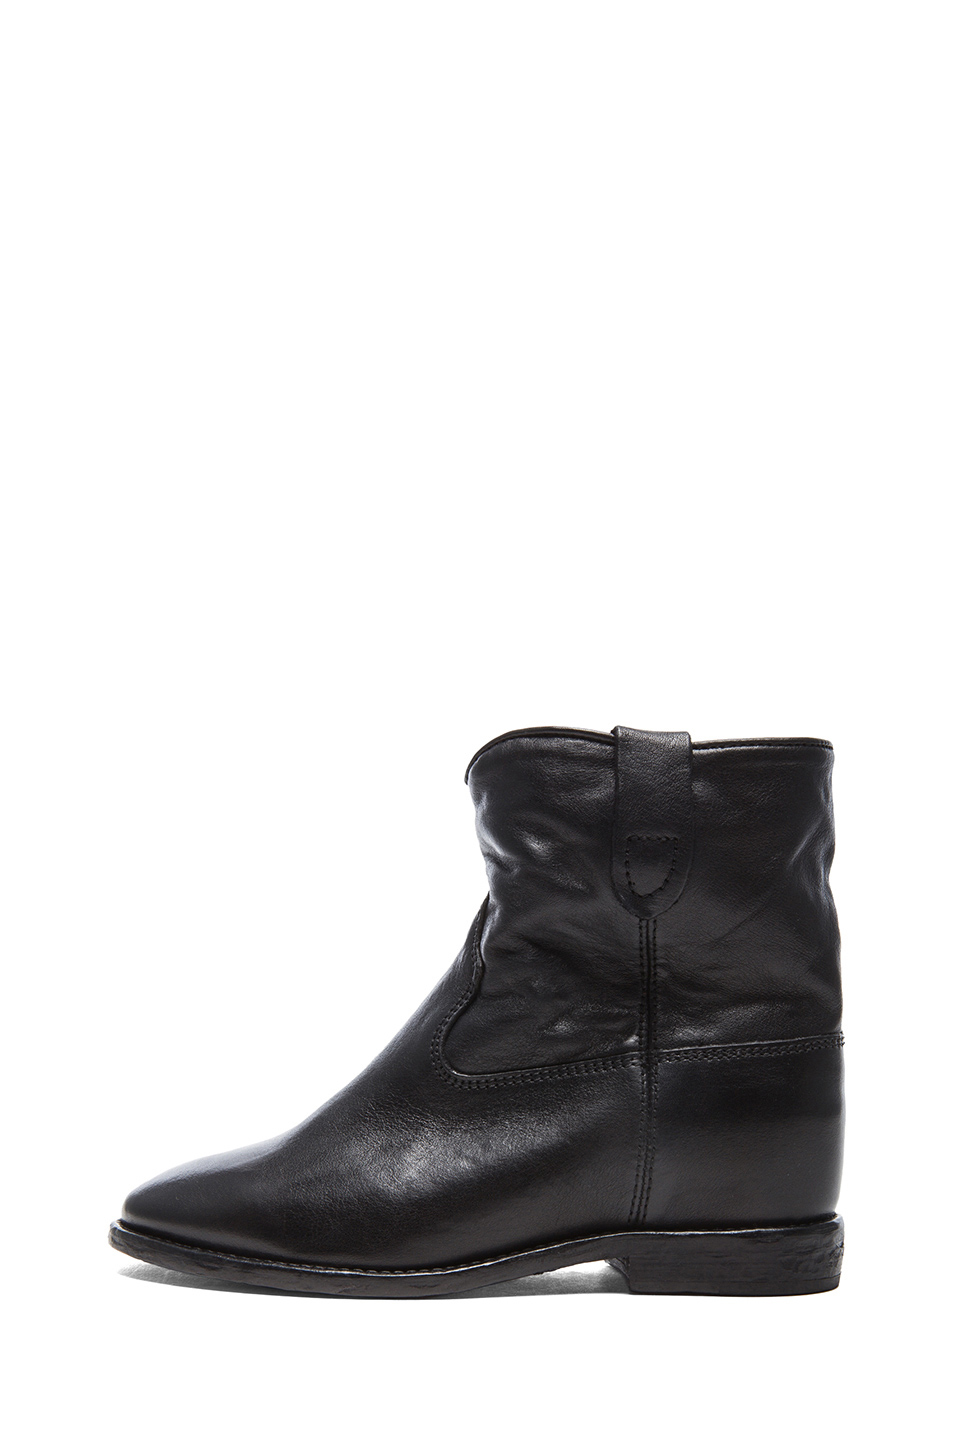 isabel marant cluster leather boots in black leather. Black Bedroom Furniture Sets. Home Design Ideas